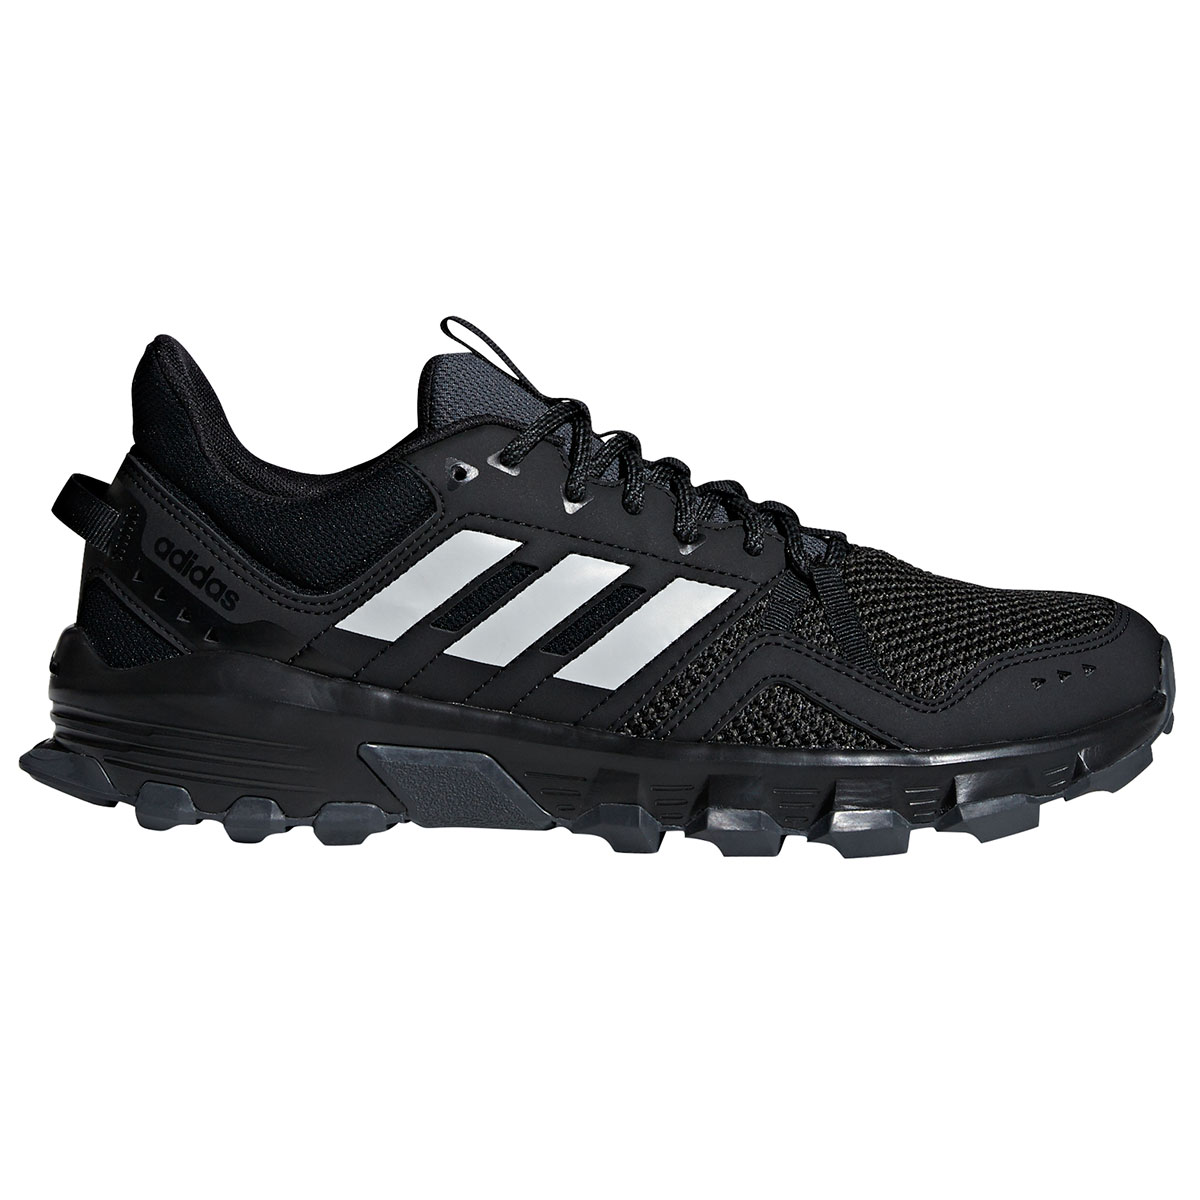 Adidas Men's Rockadia Trail Running Shoes - Black, 8.5